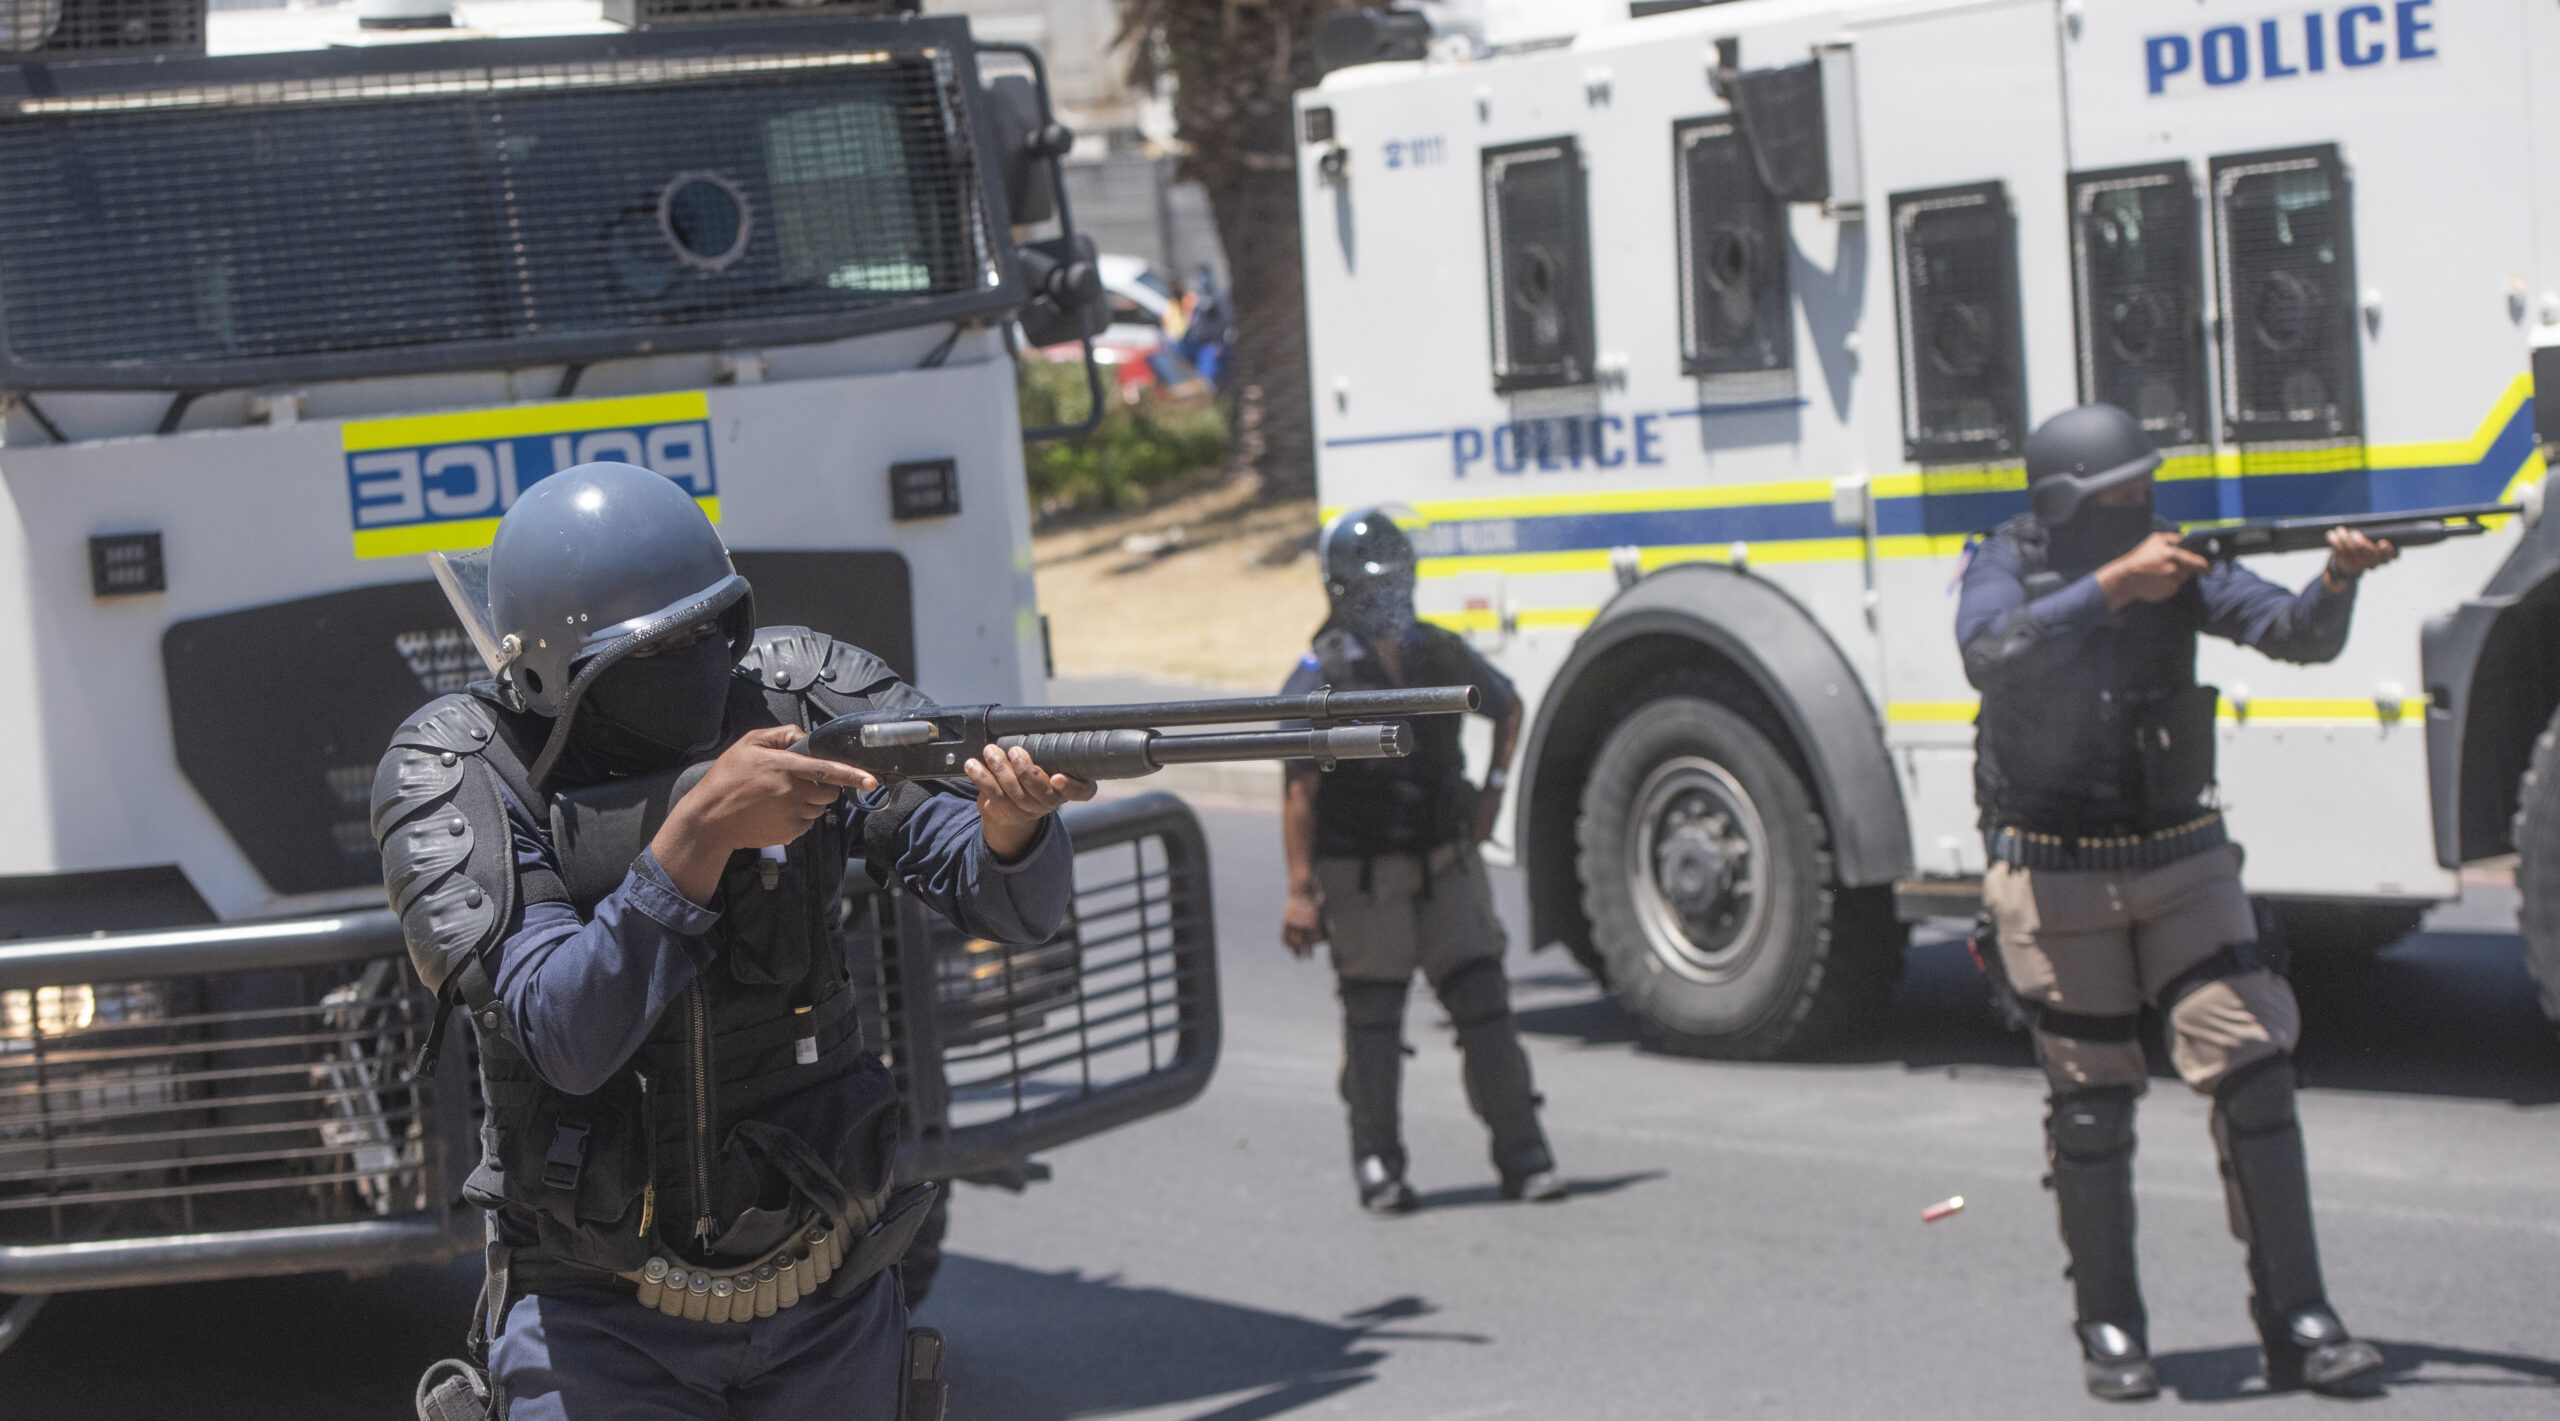 Police killings: how does South Africa compare?